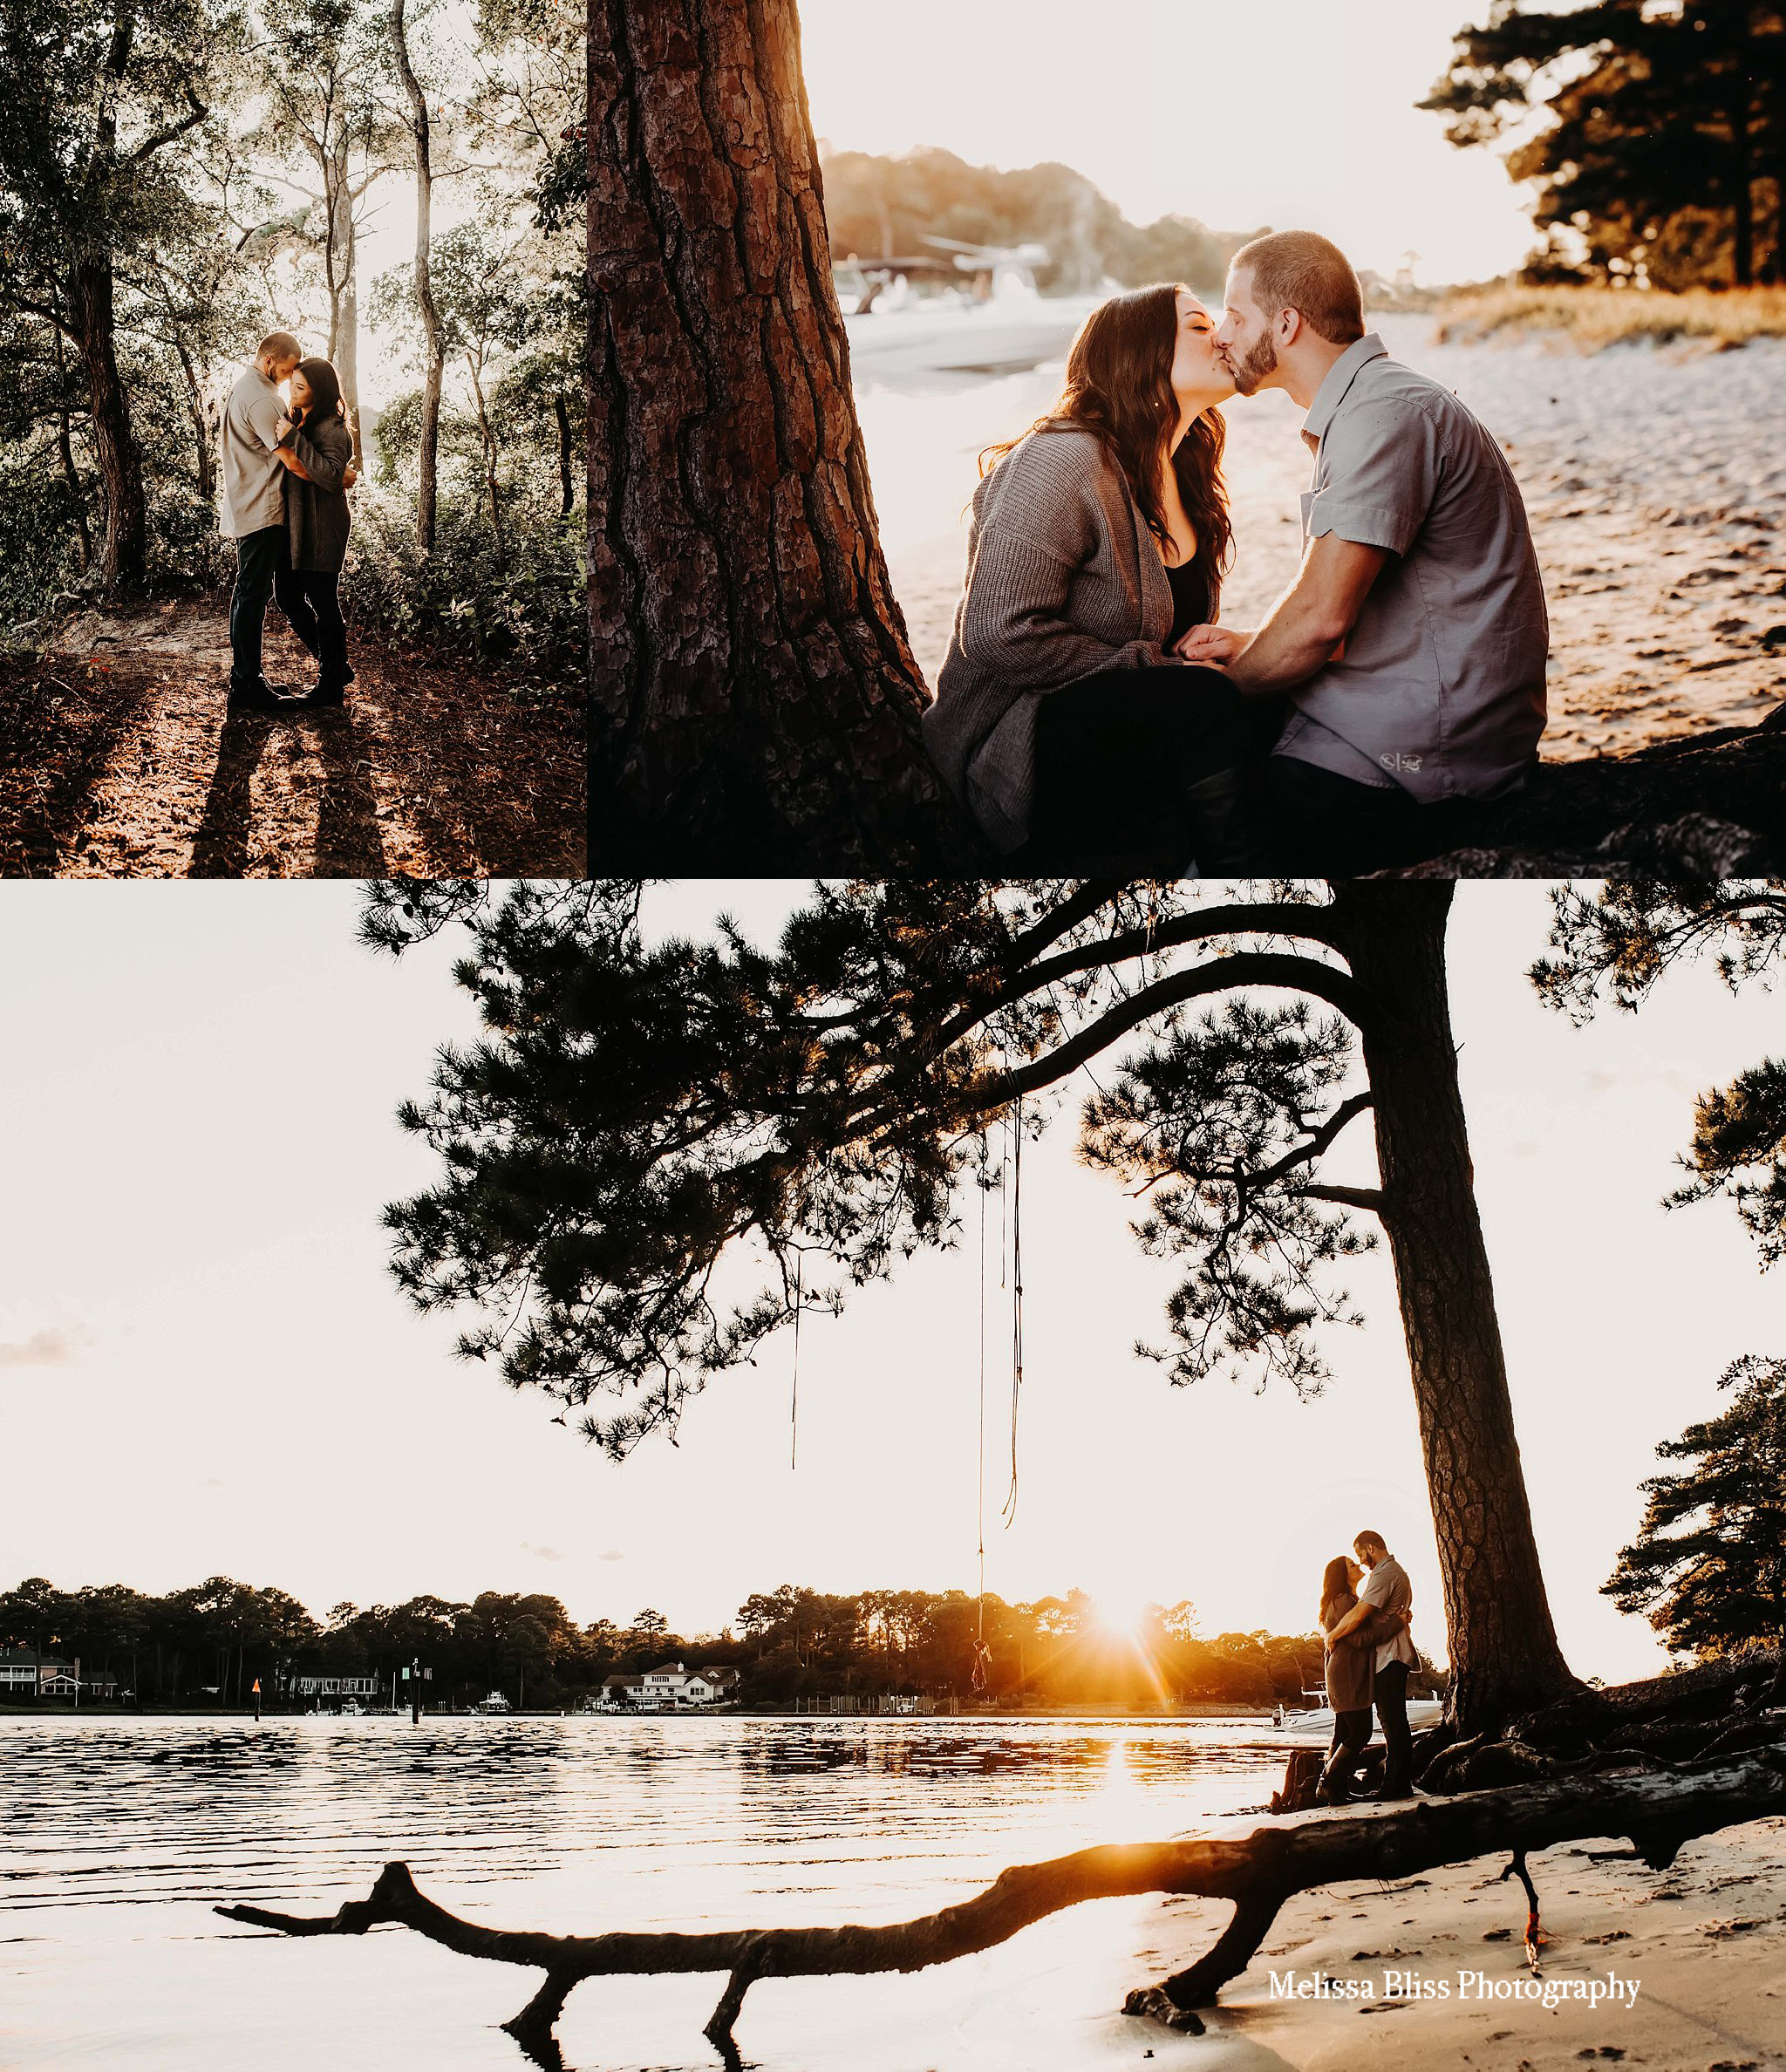 first-landing-state-park-engagement-pictures-fall-engagement-session-norfolk-wedding-photographer-melissa-bliss-photography-.jpg